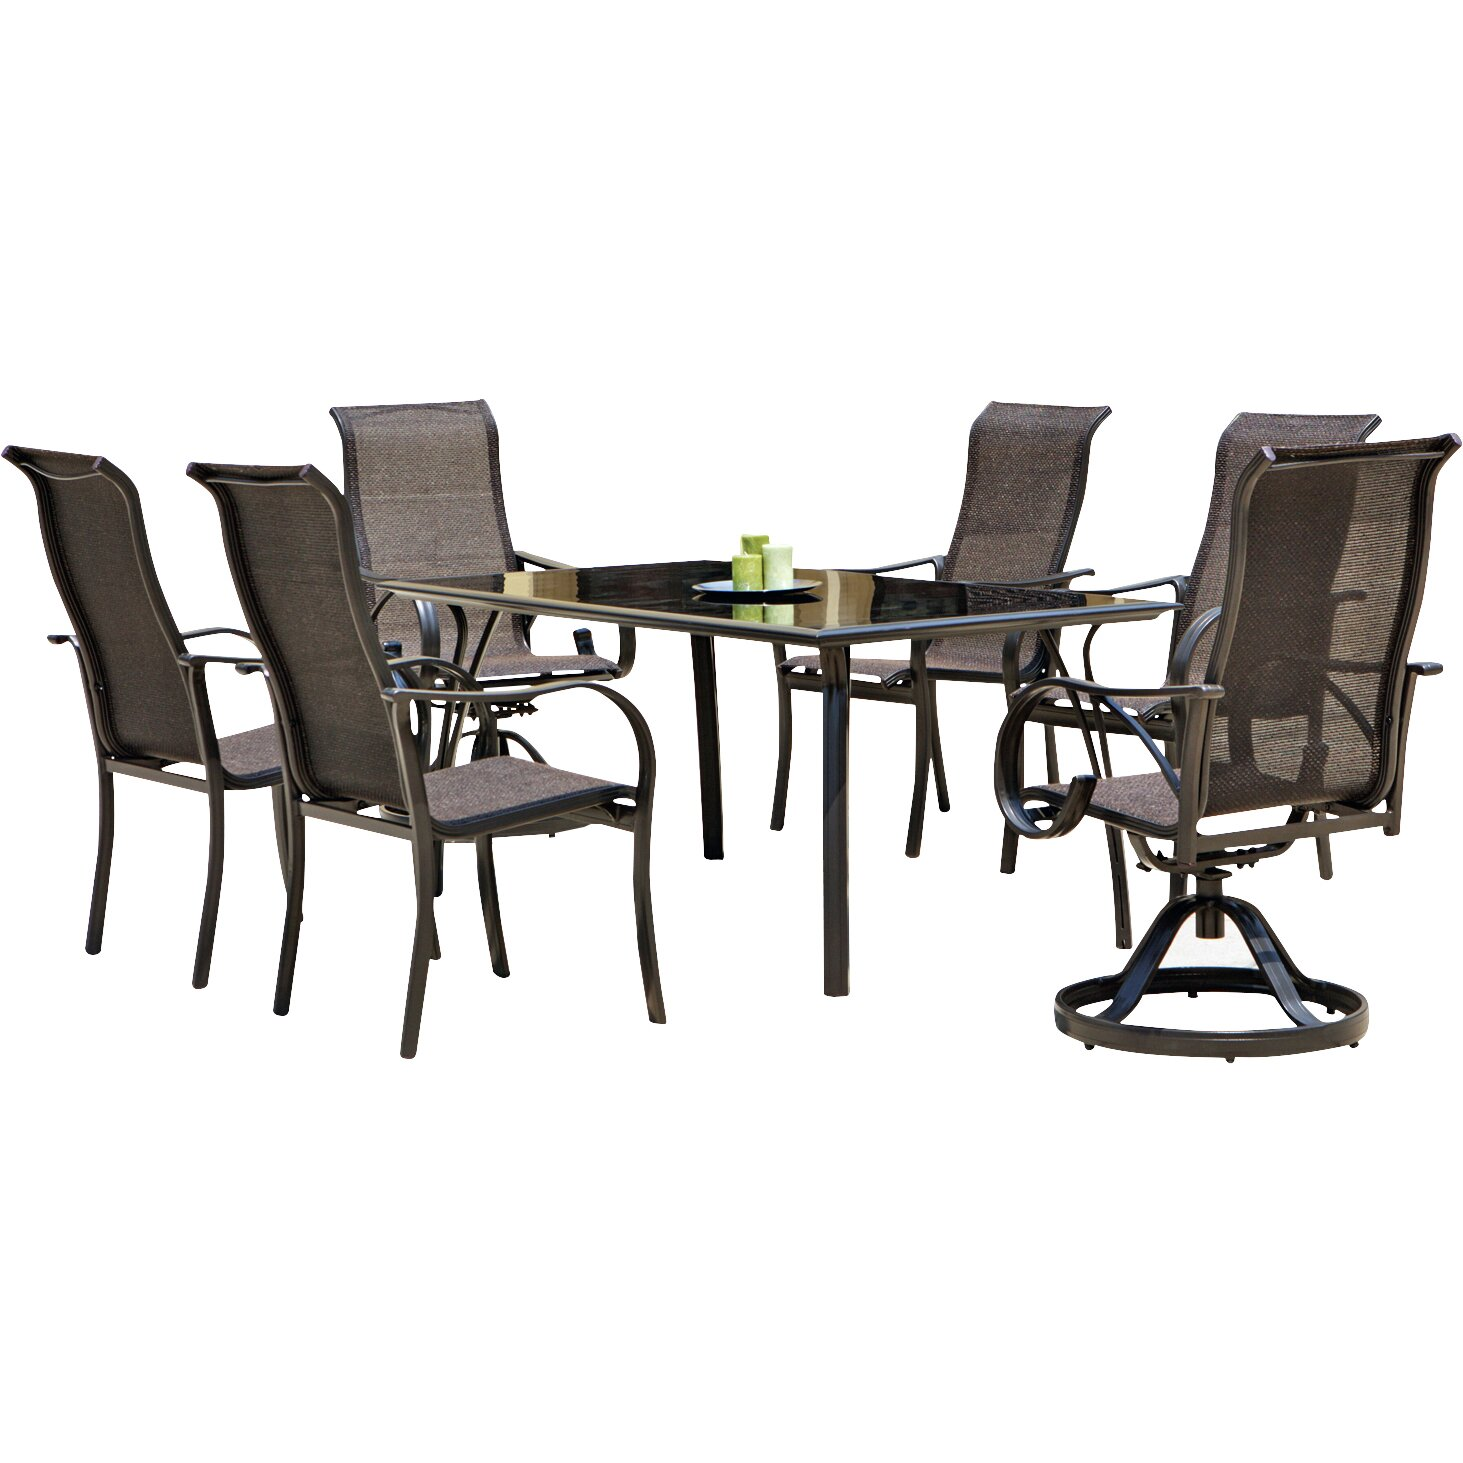 Ultimate Accents Urban 7 Piece Dining Set Reviews: Mission Hills Coronado 7 Piece Dining Set & Reviews